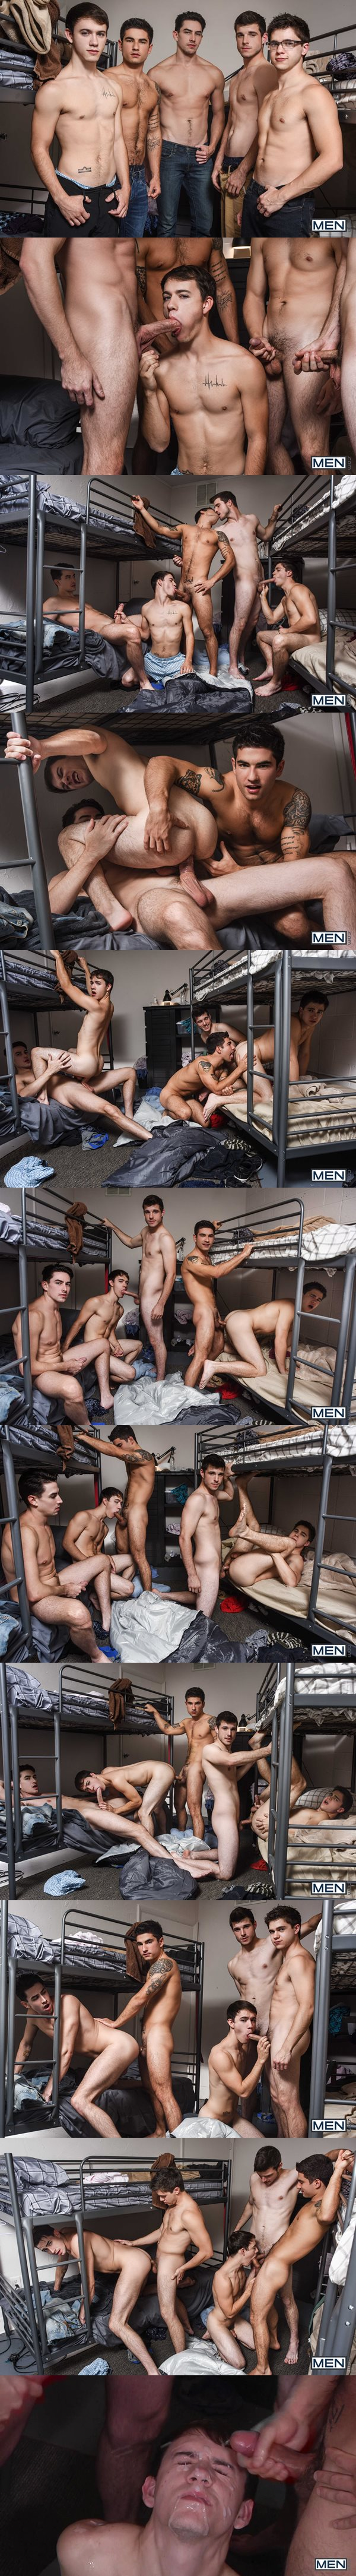 Hot straight jocks Noah Jones and Vadim Black fuck Zach Taylor, Will Braun and Jack Hunter at Jizzorgy 02